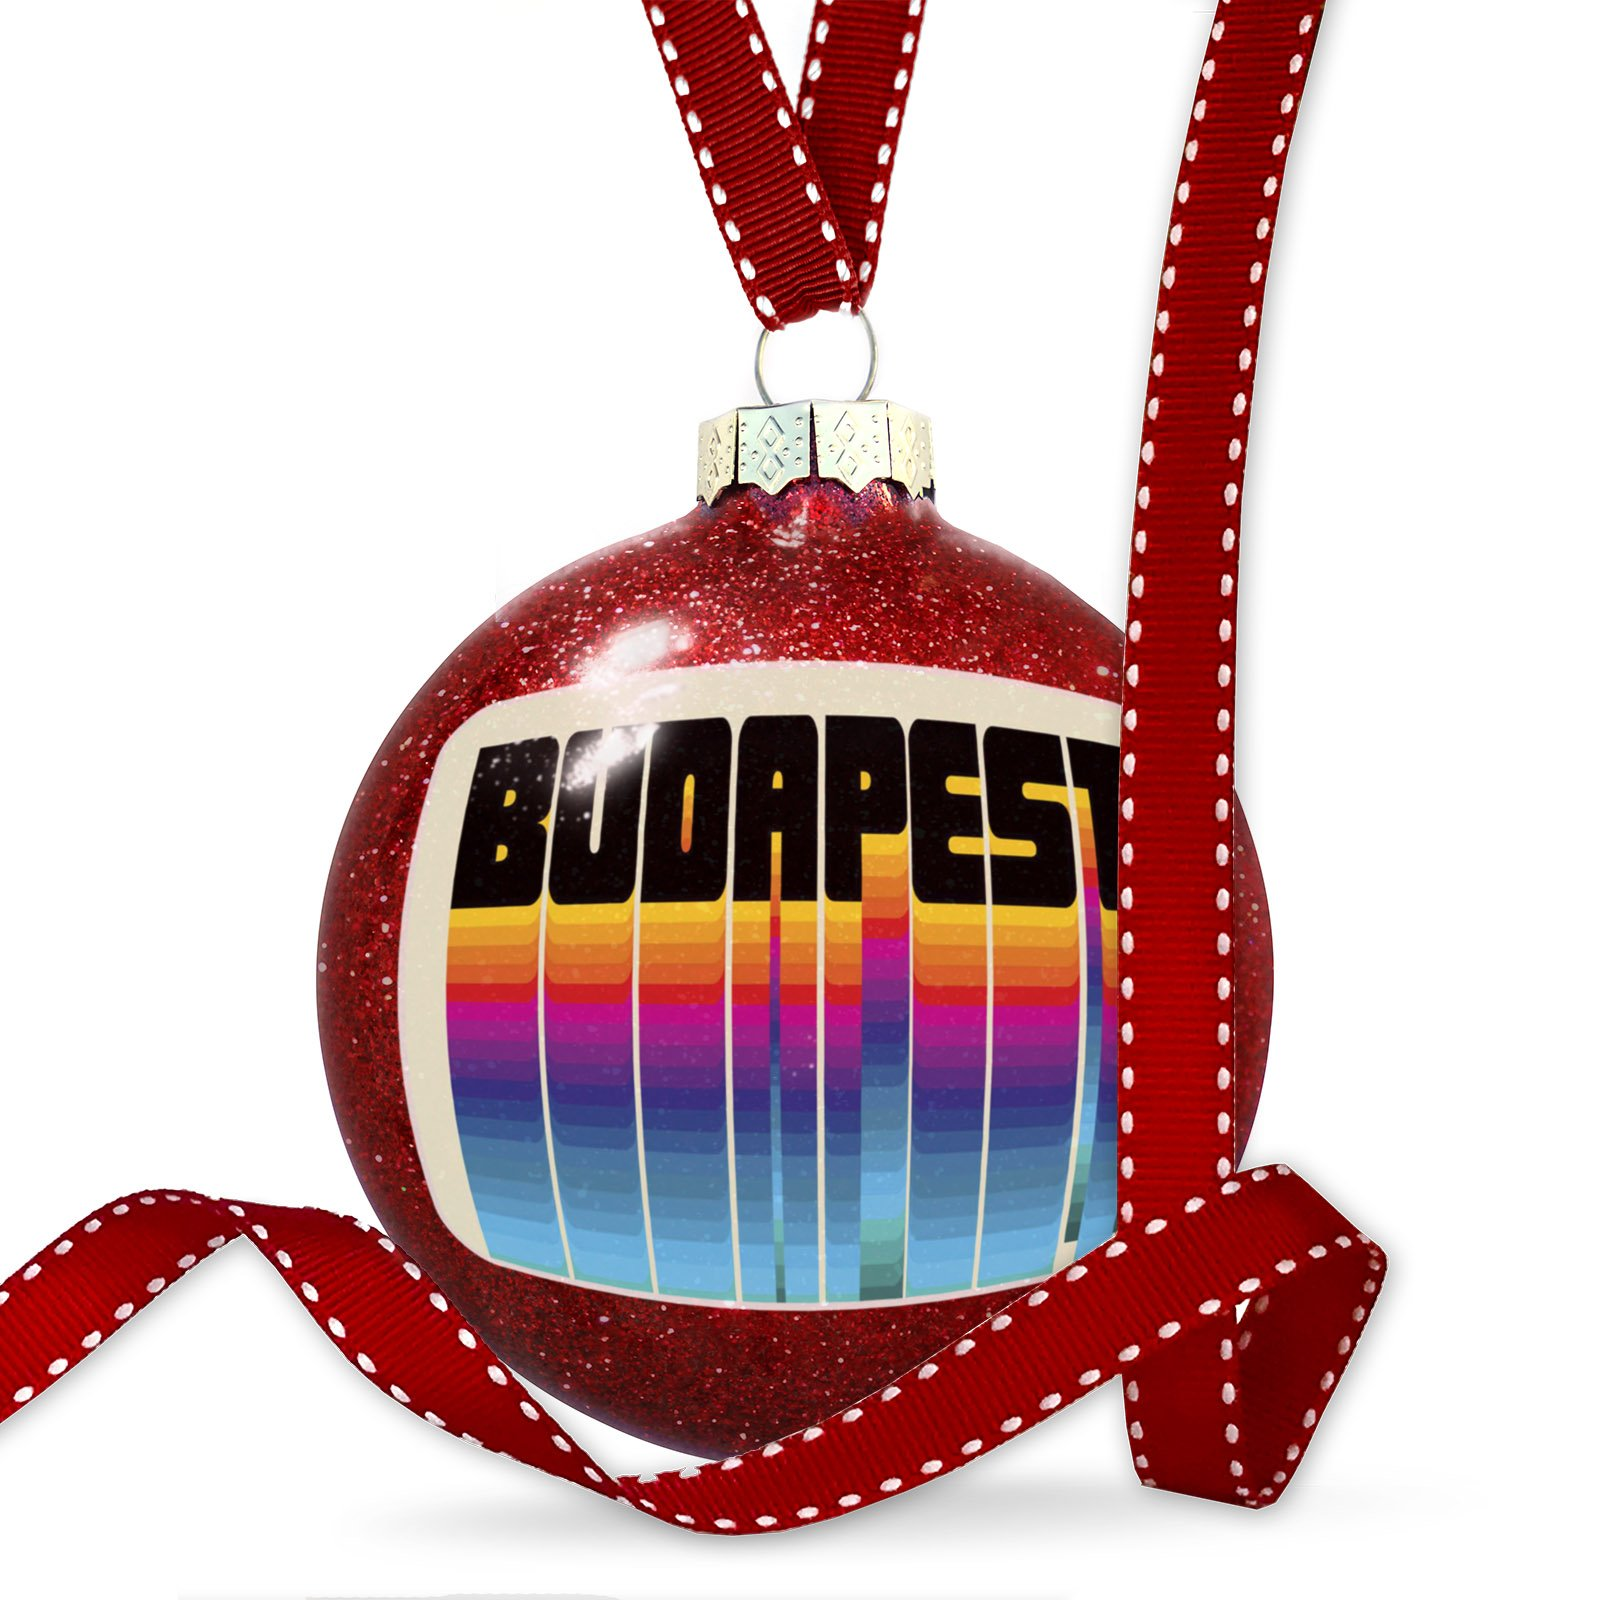 Christmas Decoration Retro Cites States Countries Budapest Ornament by NEONBLOND (Image #1)